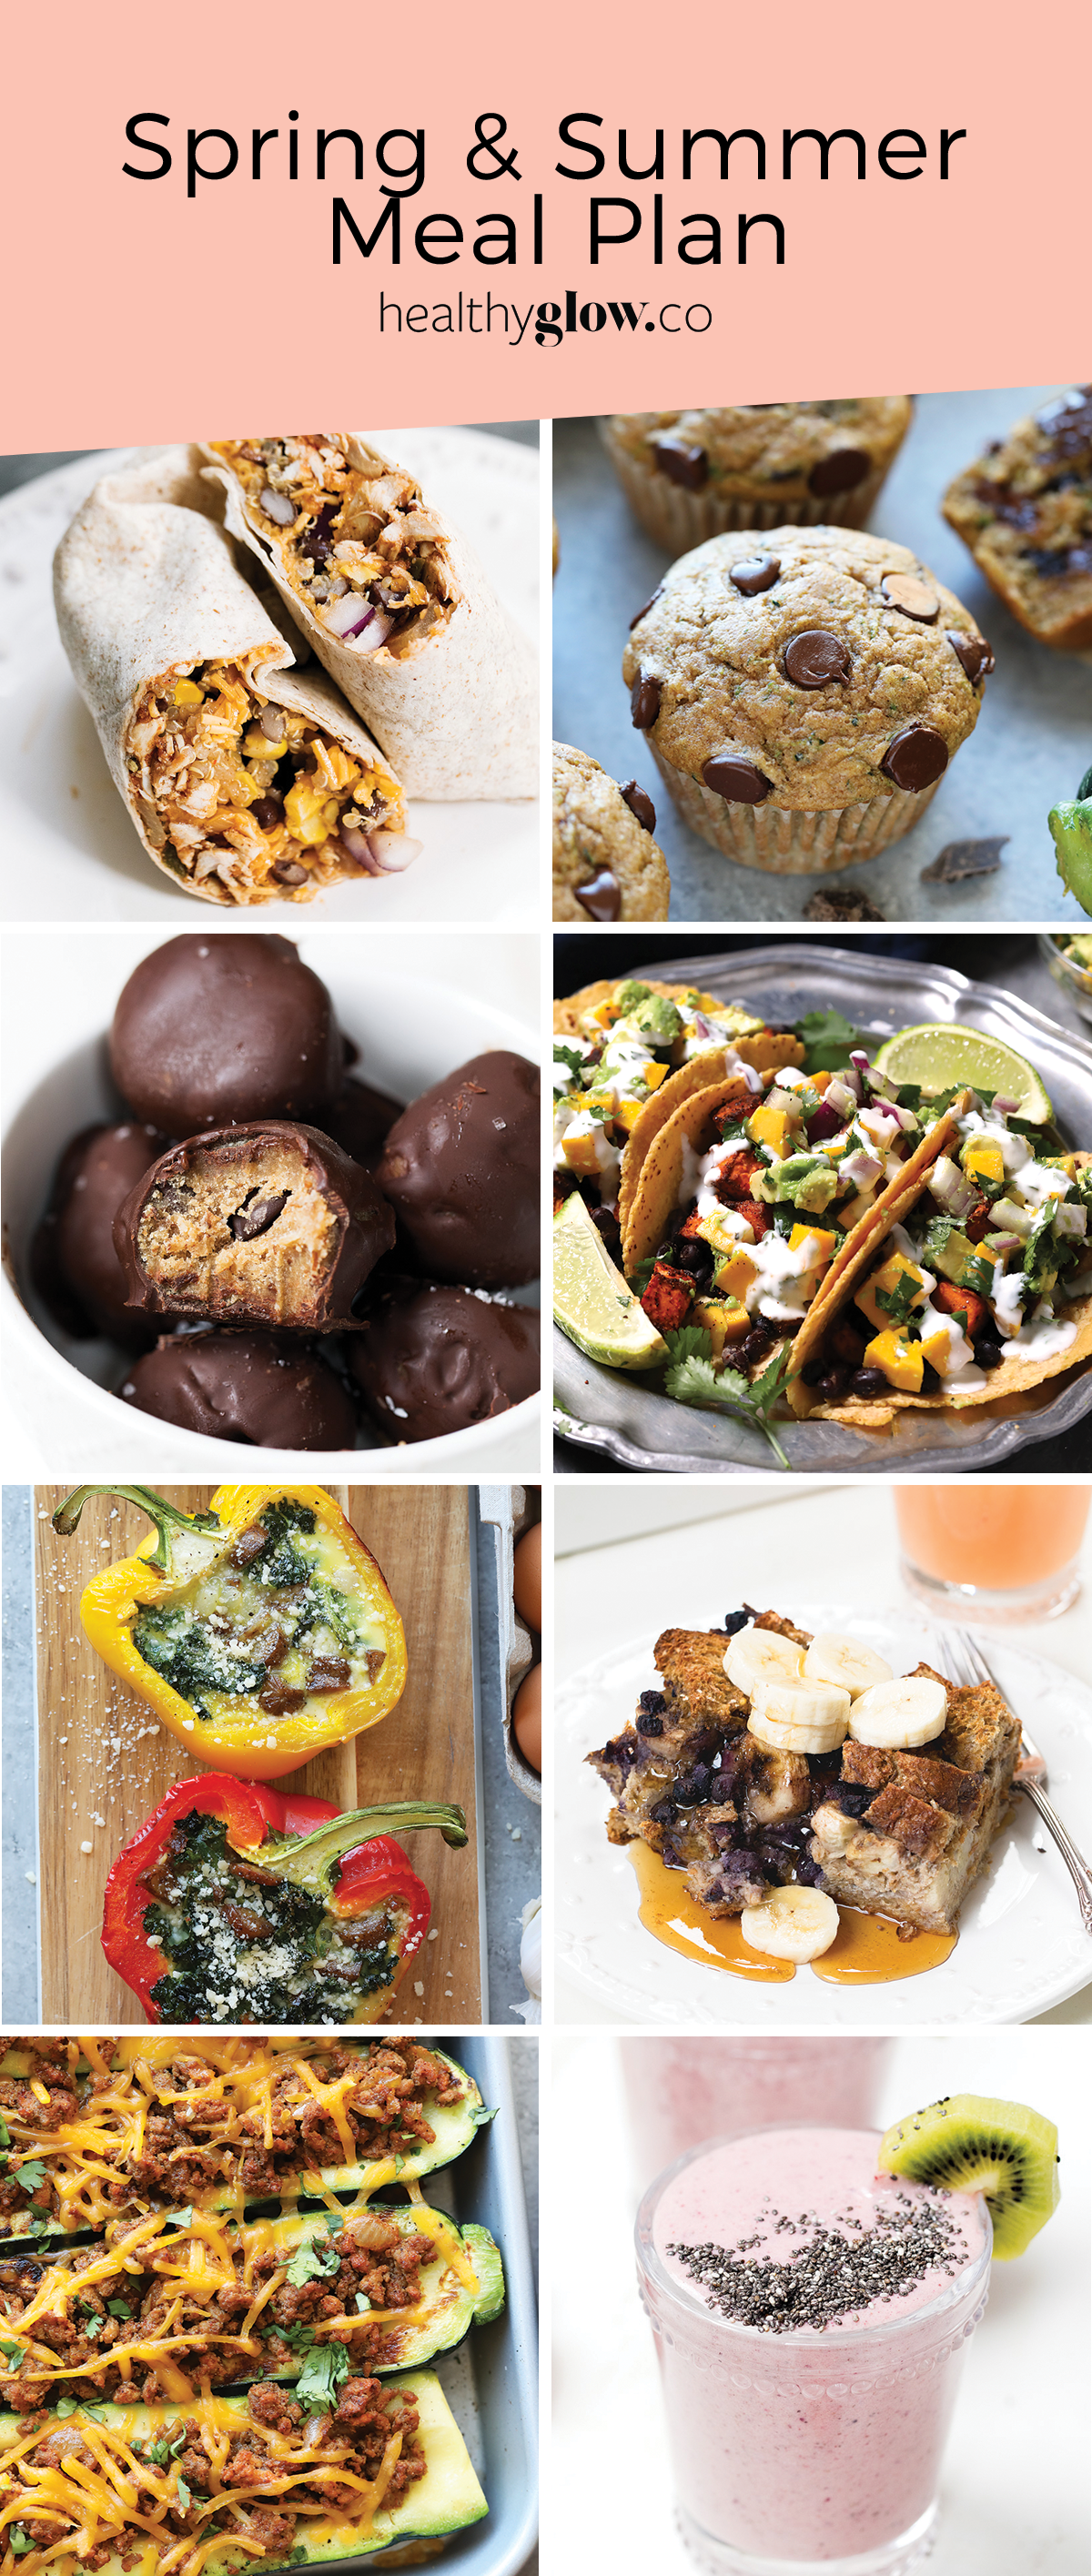 Introducing the Healthy Glow Guide 6 week summer meal plan: fresh tasty meals, grocery lists, nutrition, clean eating staples and so much more!